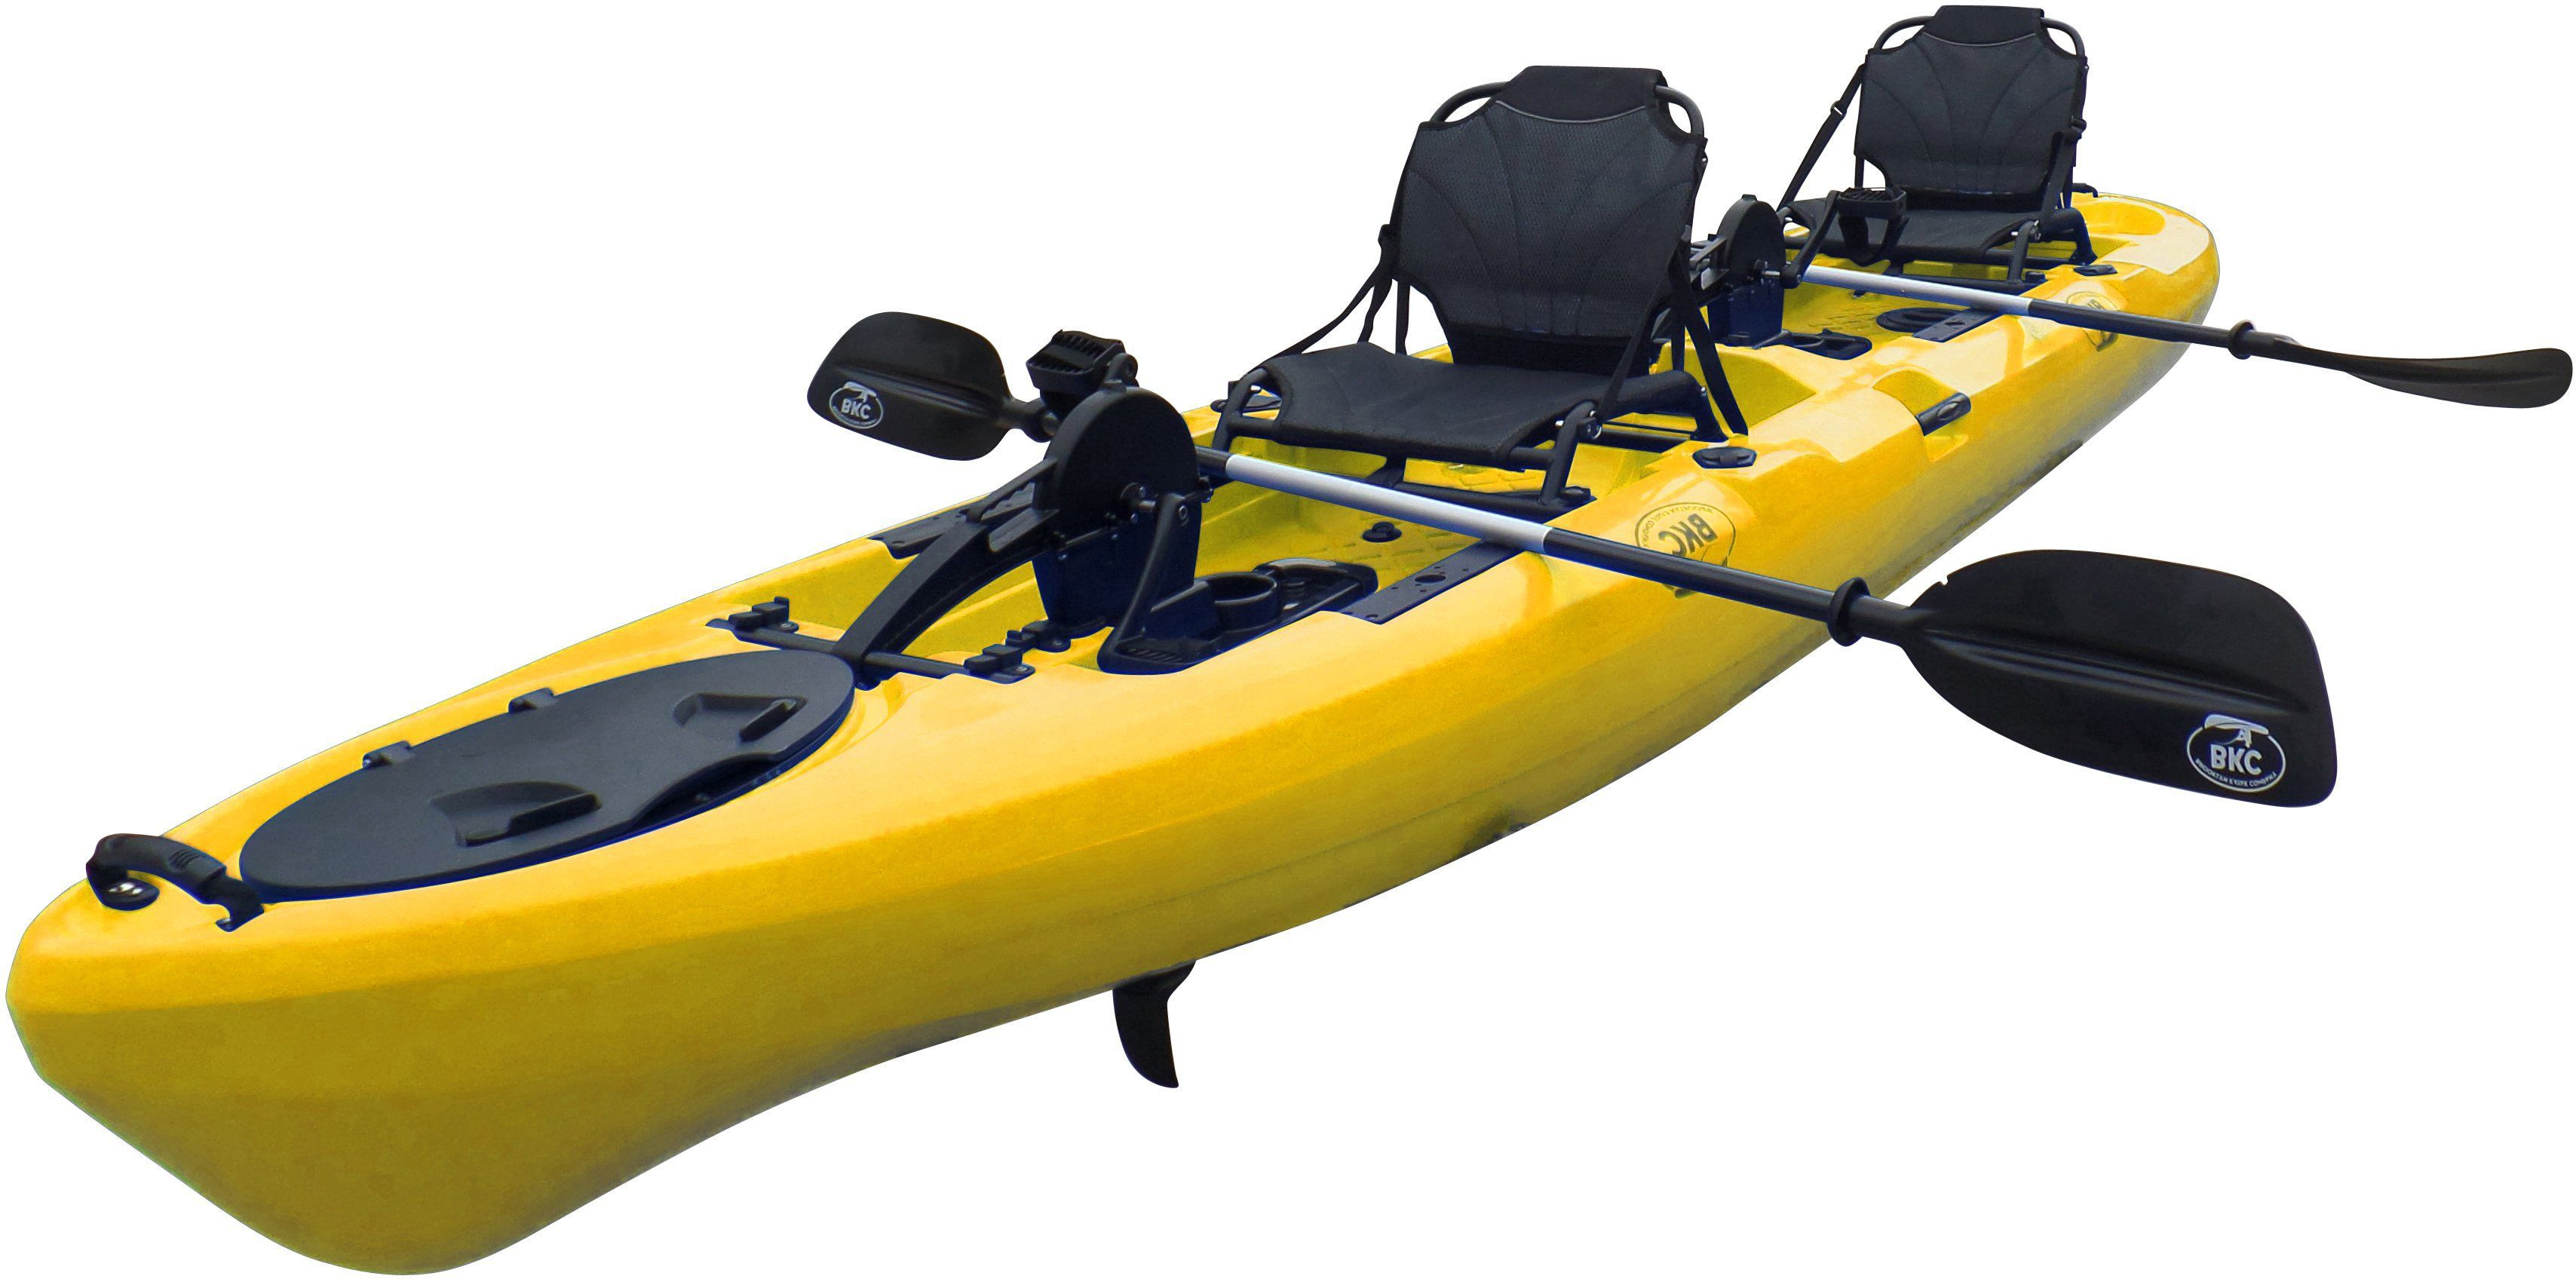 Best Pedal Kayaks Review Comparison Table Features Photos Videos Buying Guide Ocean Kayak Bkc Hobie Perception Wilderness Syst